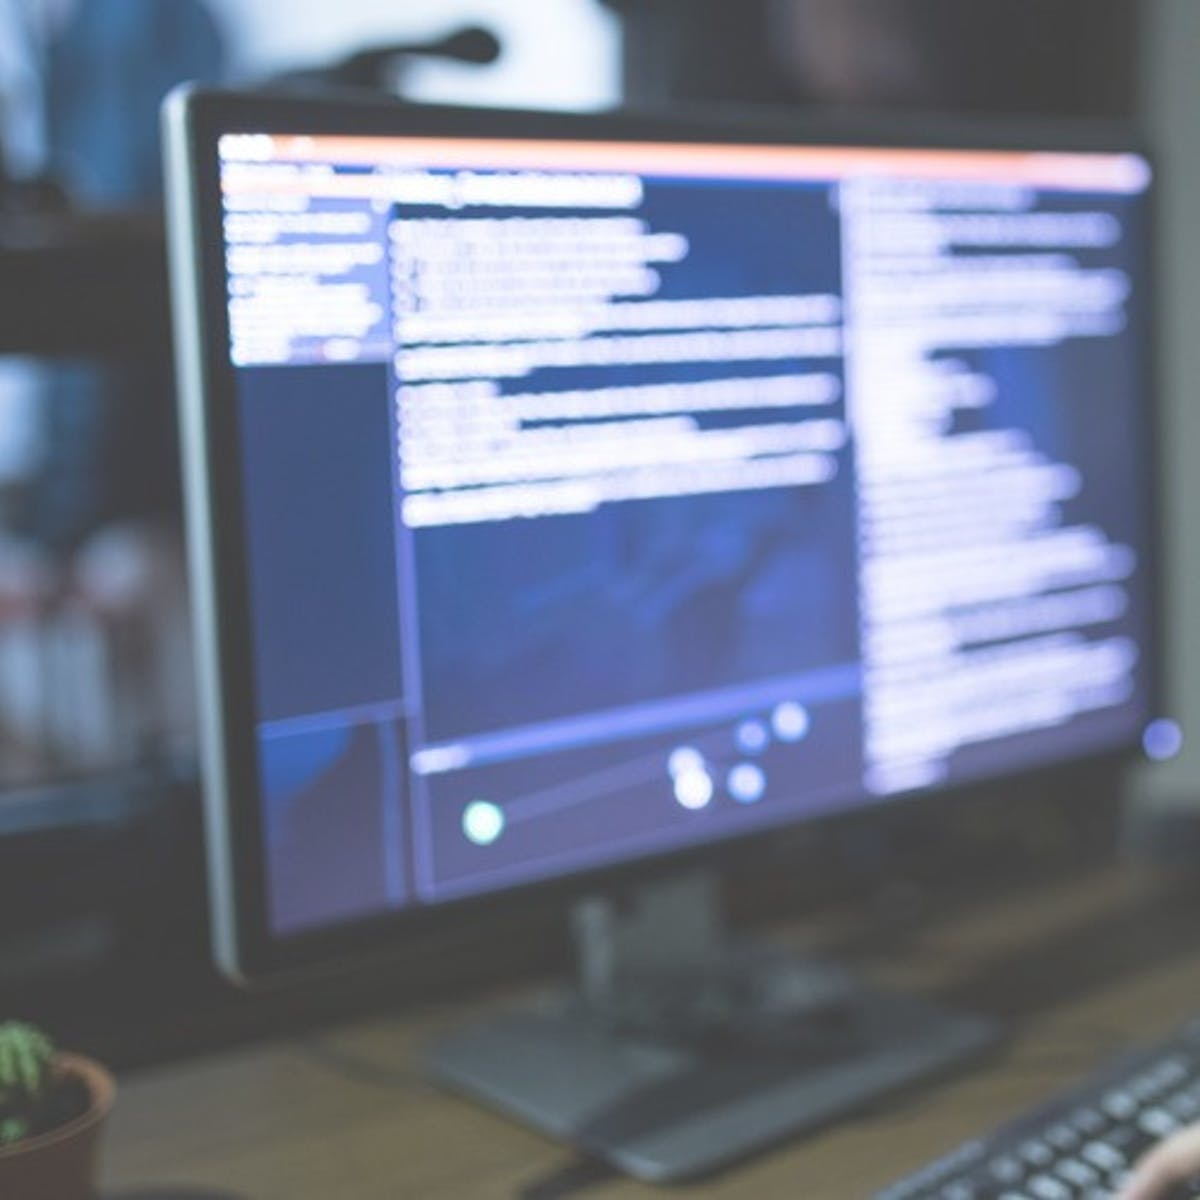 Become a Hacking Expert With This Bundle